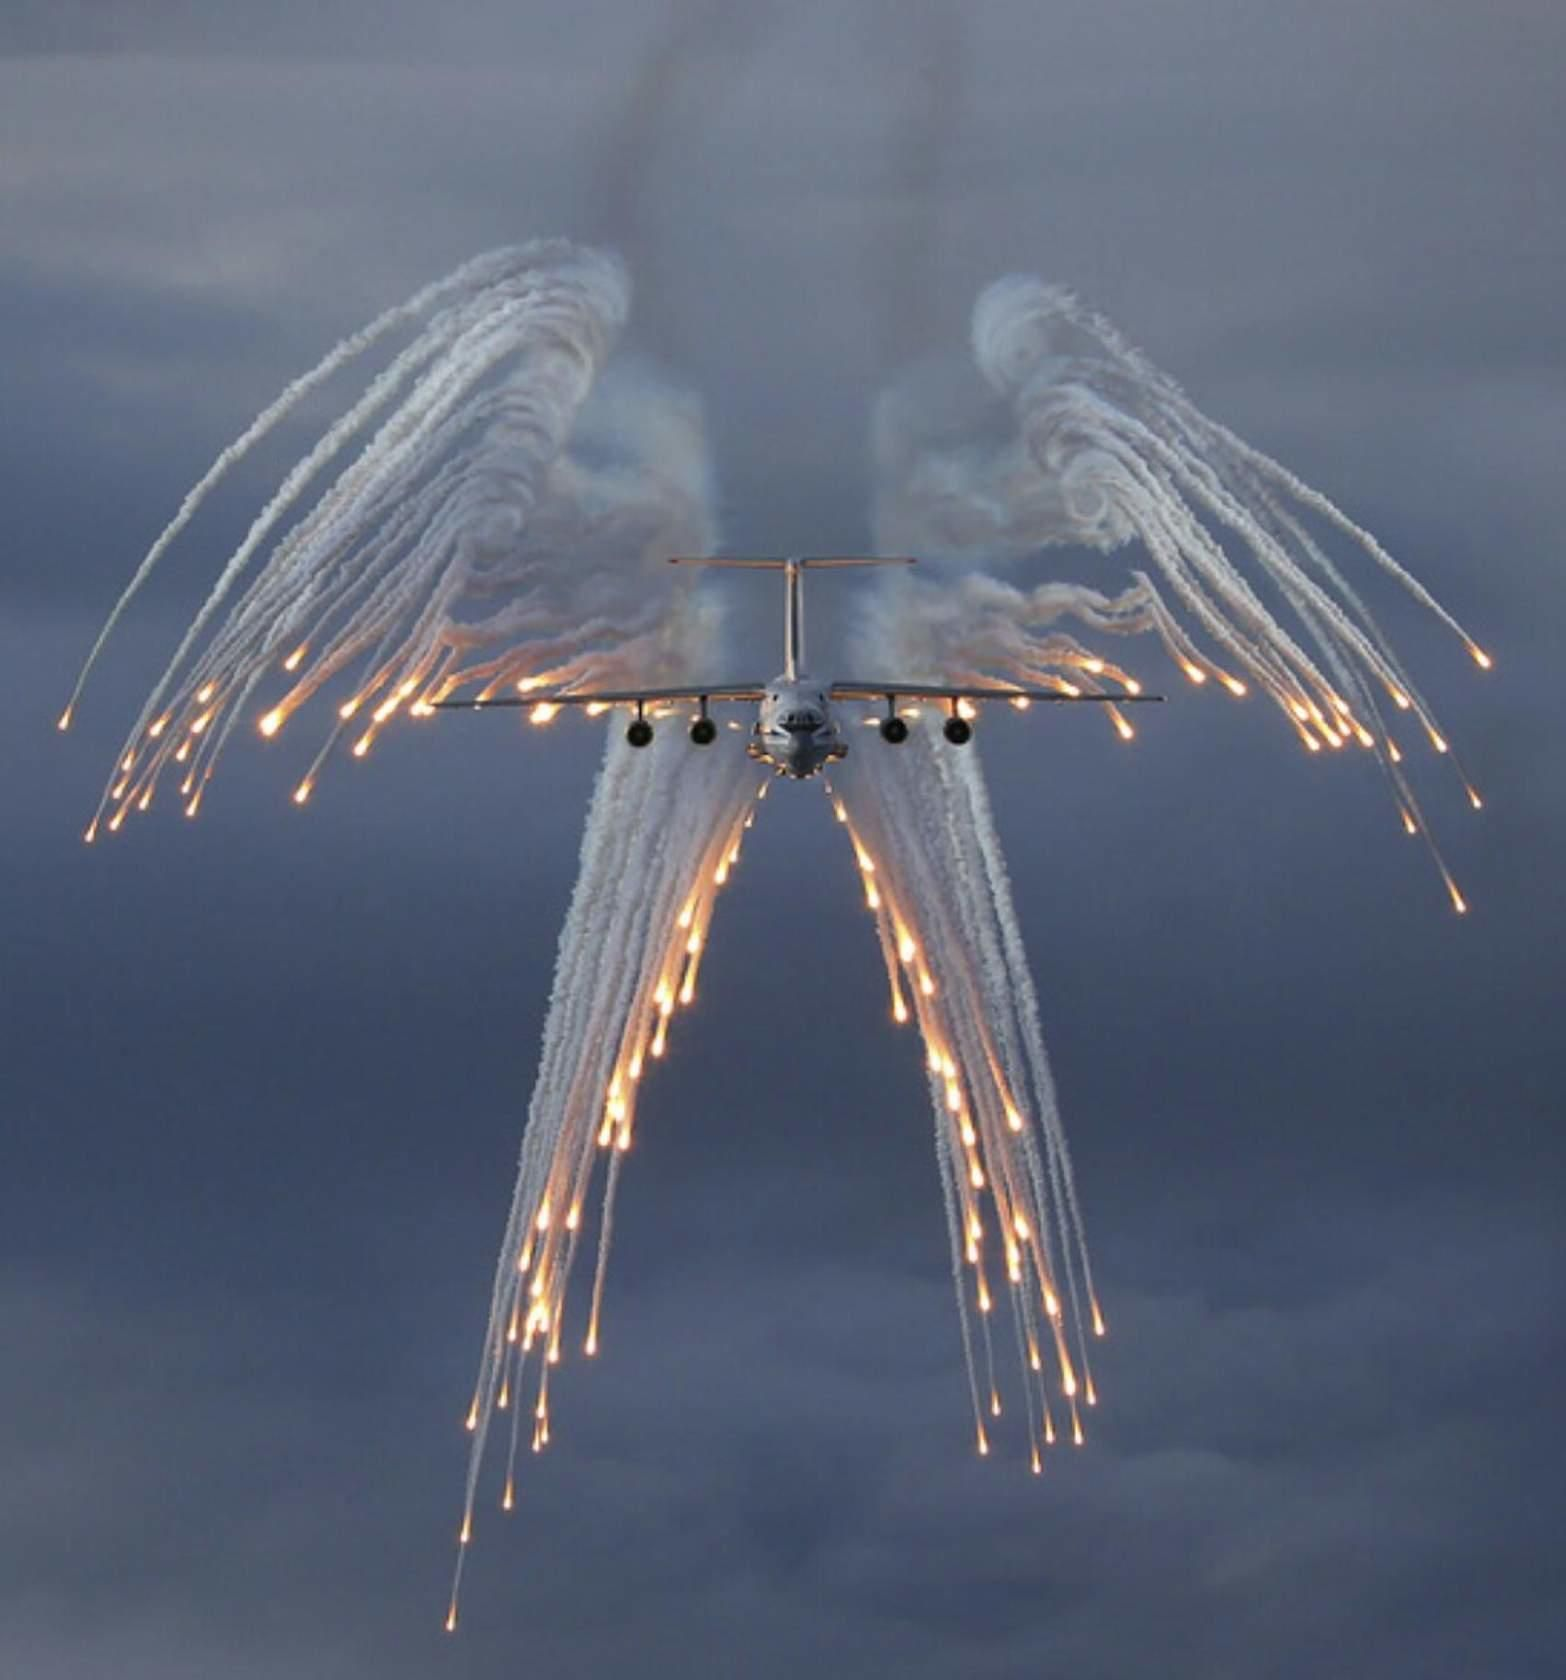 FACT CHECK: Do 'Angel Flights' Release Flare Salutes For